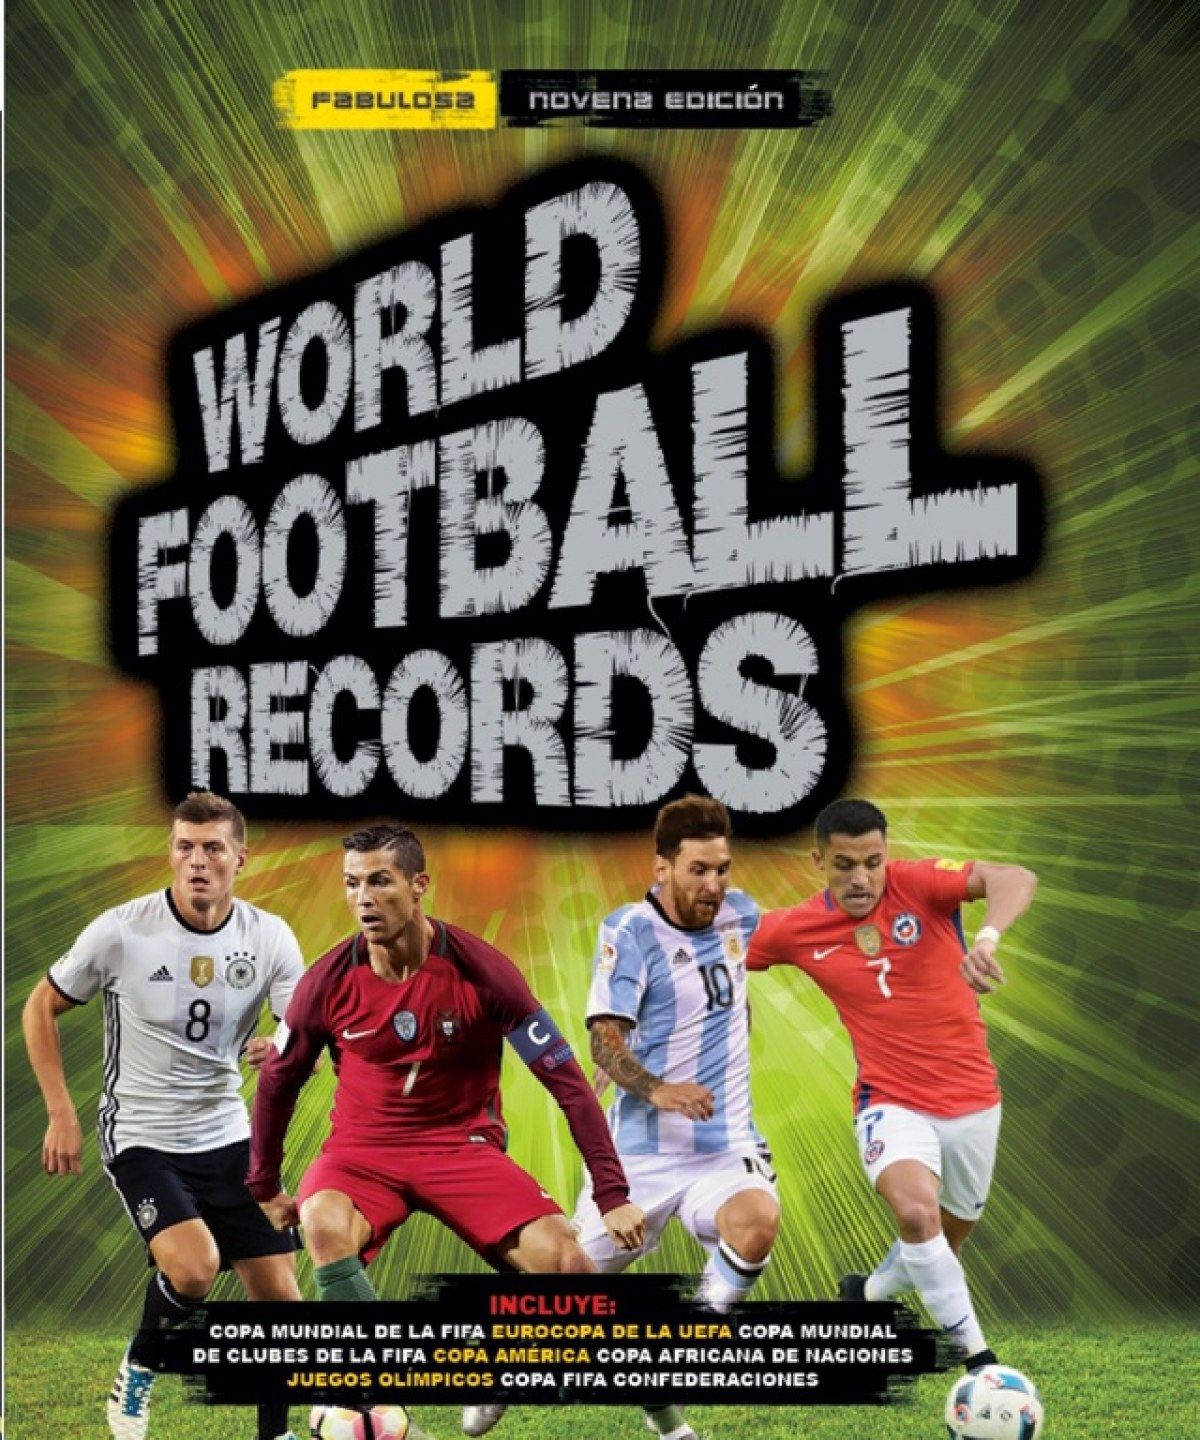 WORLD FOOTBALL RECORDS 2018